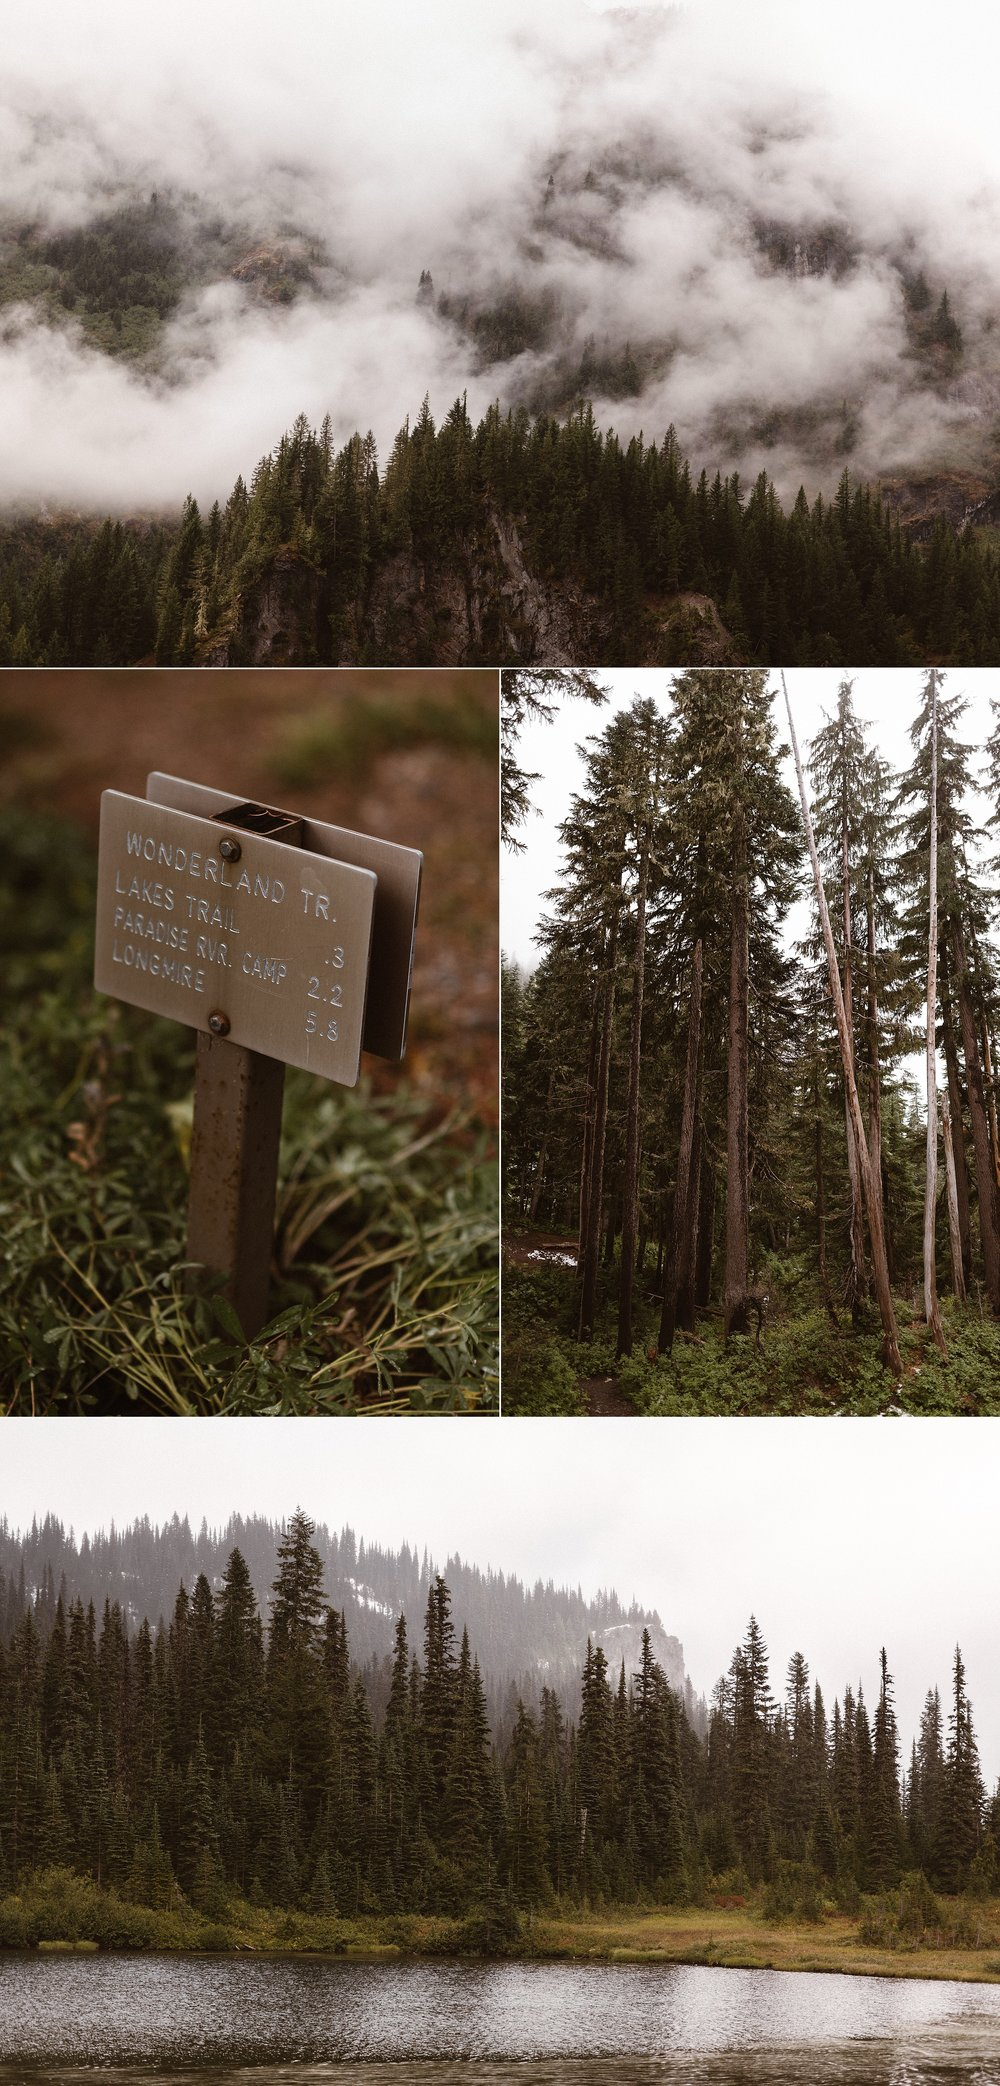 Mount Rainier National Park is one of the most stunning green places. The tall evergreens that peek out from the fog and the tranquil breezes that bring movement to the lakes and streams make a magical flora and fauna backdrop for a romantic elopement in the forest. Photos of this Washington intimate wedding in the woods by traveling photographer Maddie Mae.